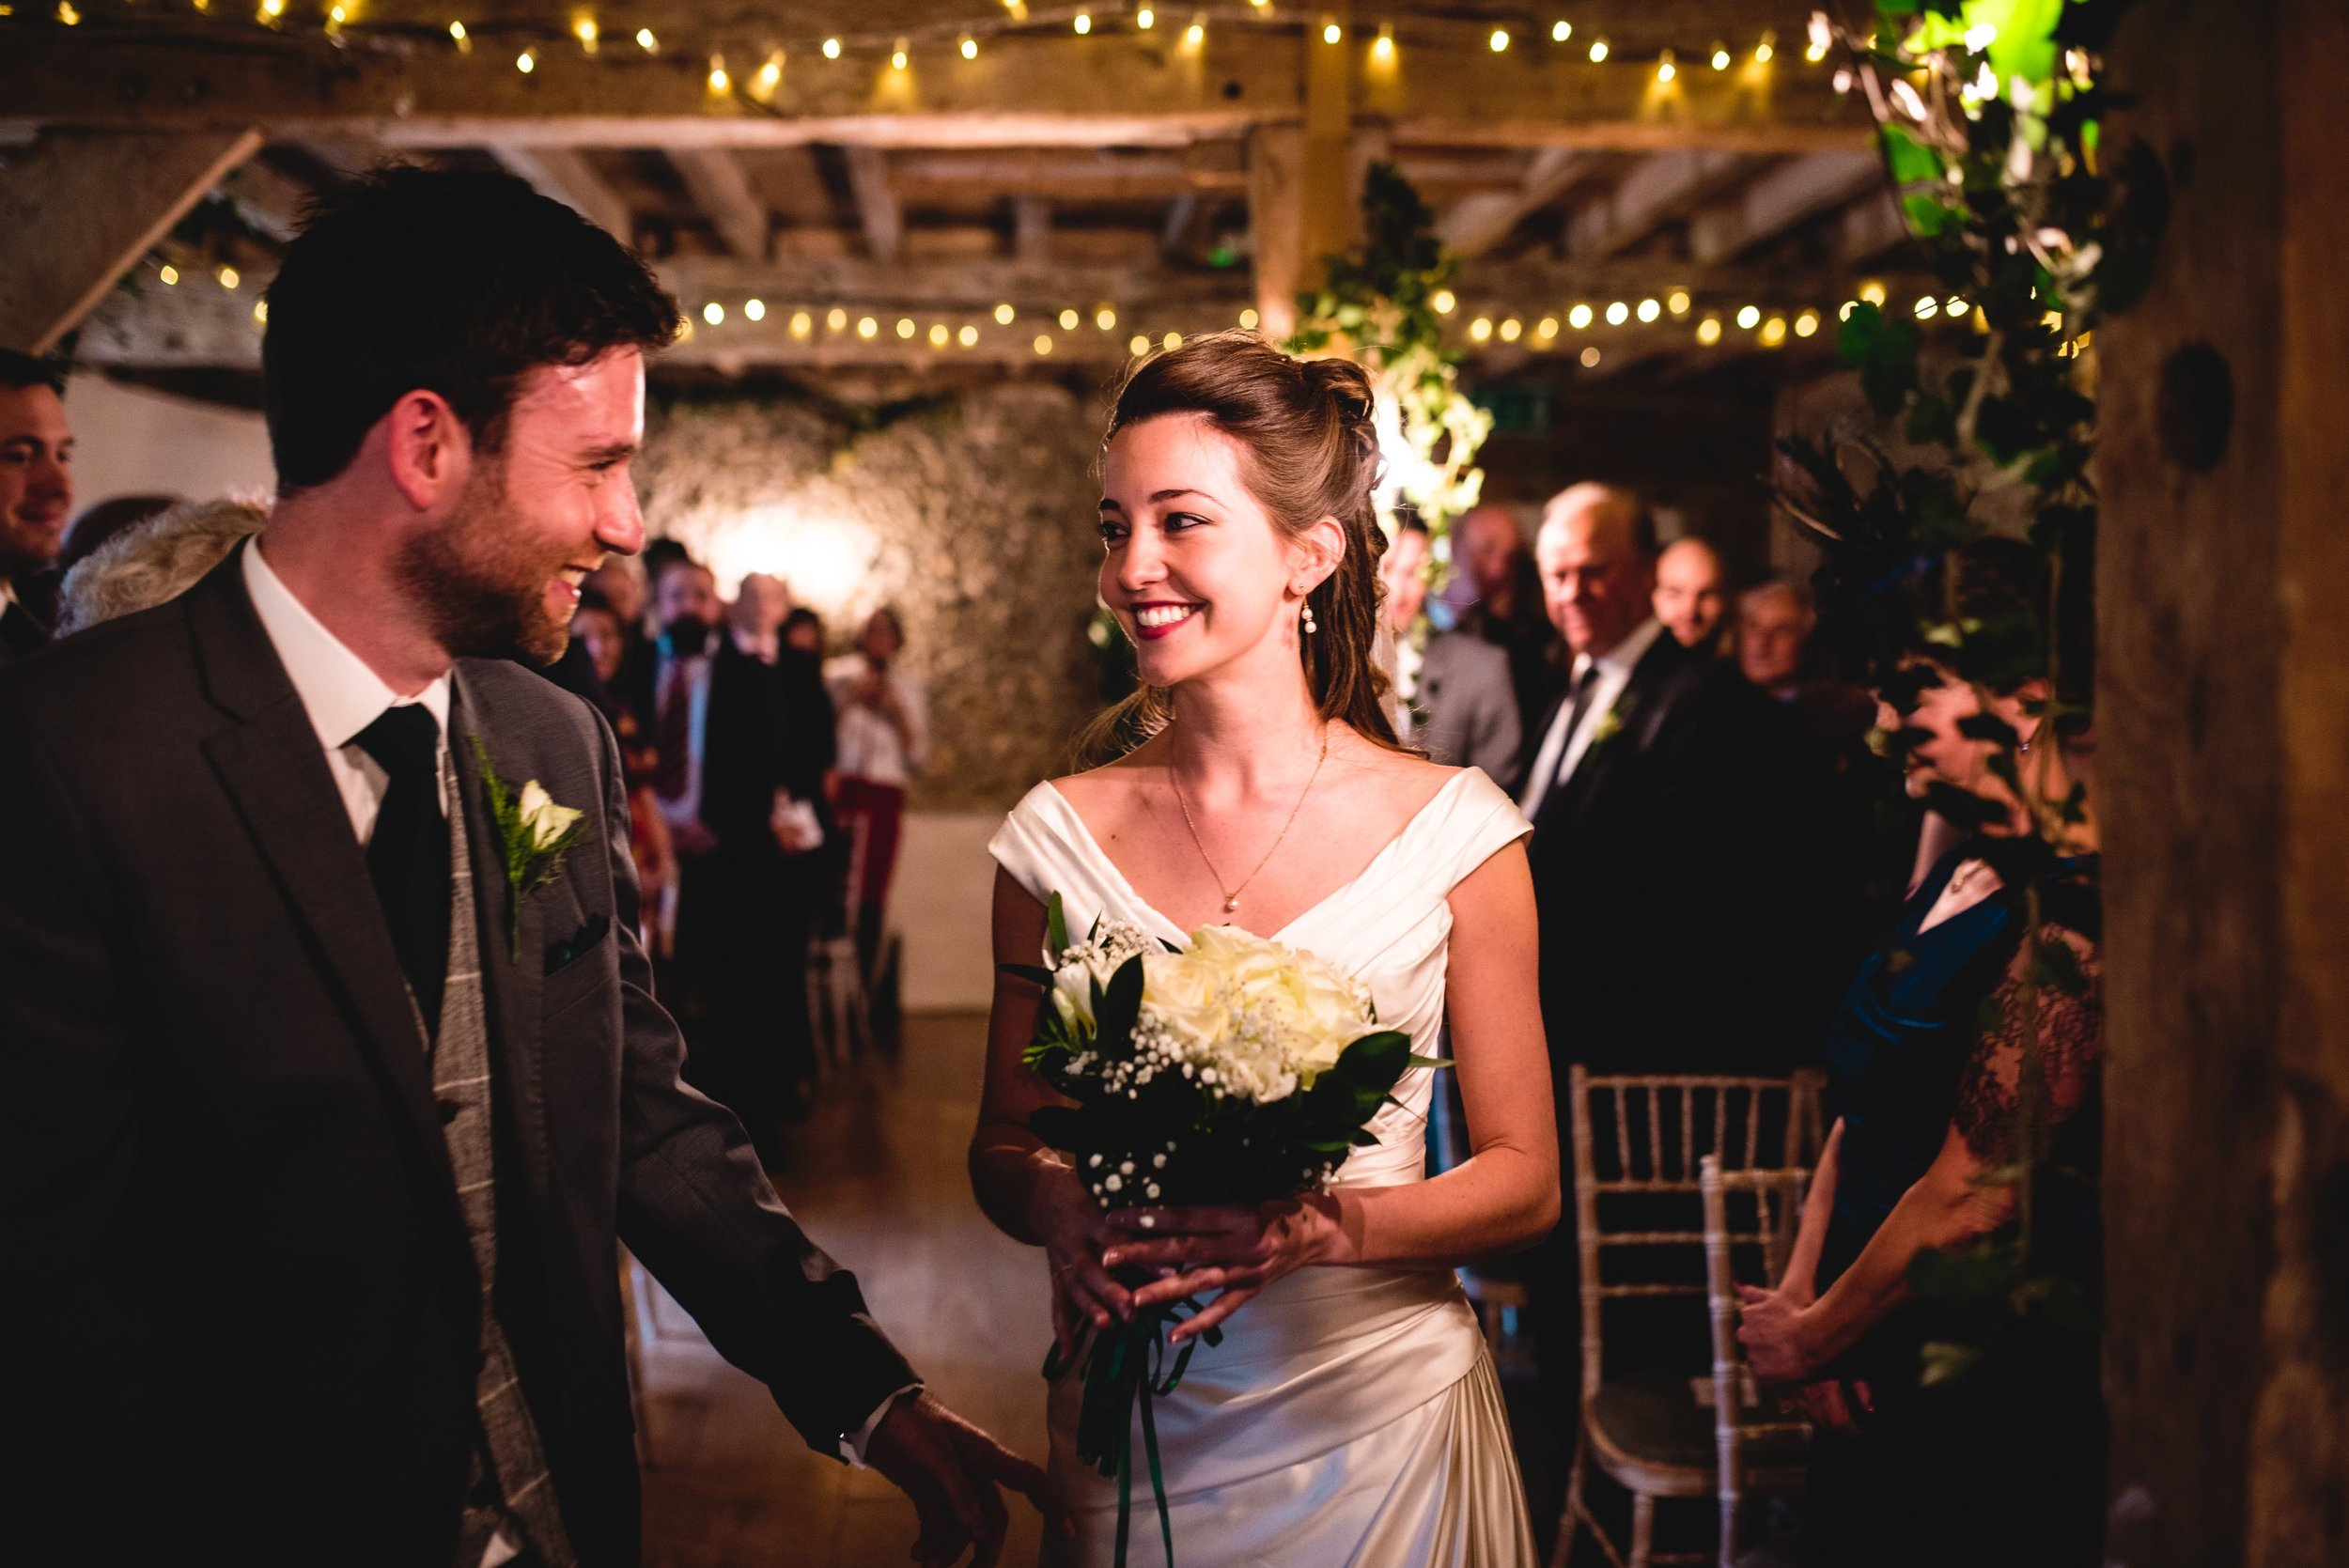 Julia and Ciaran-Colour-16February2019-180-min.jpg